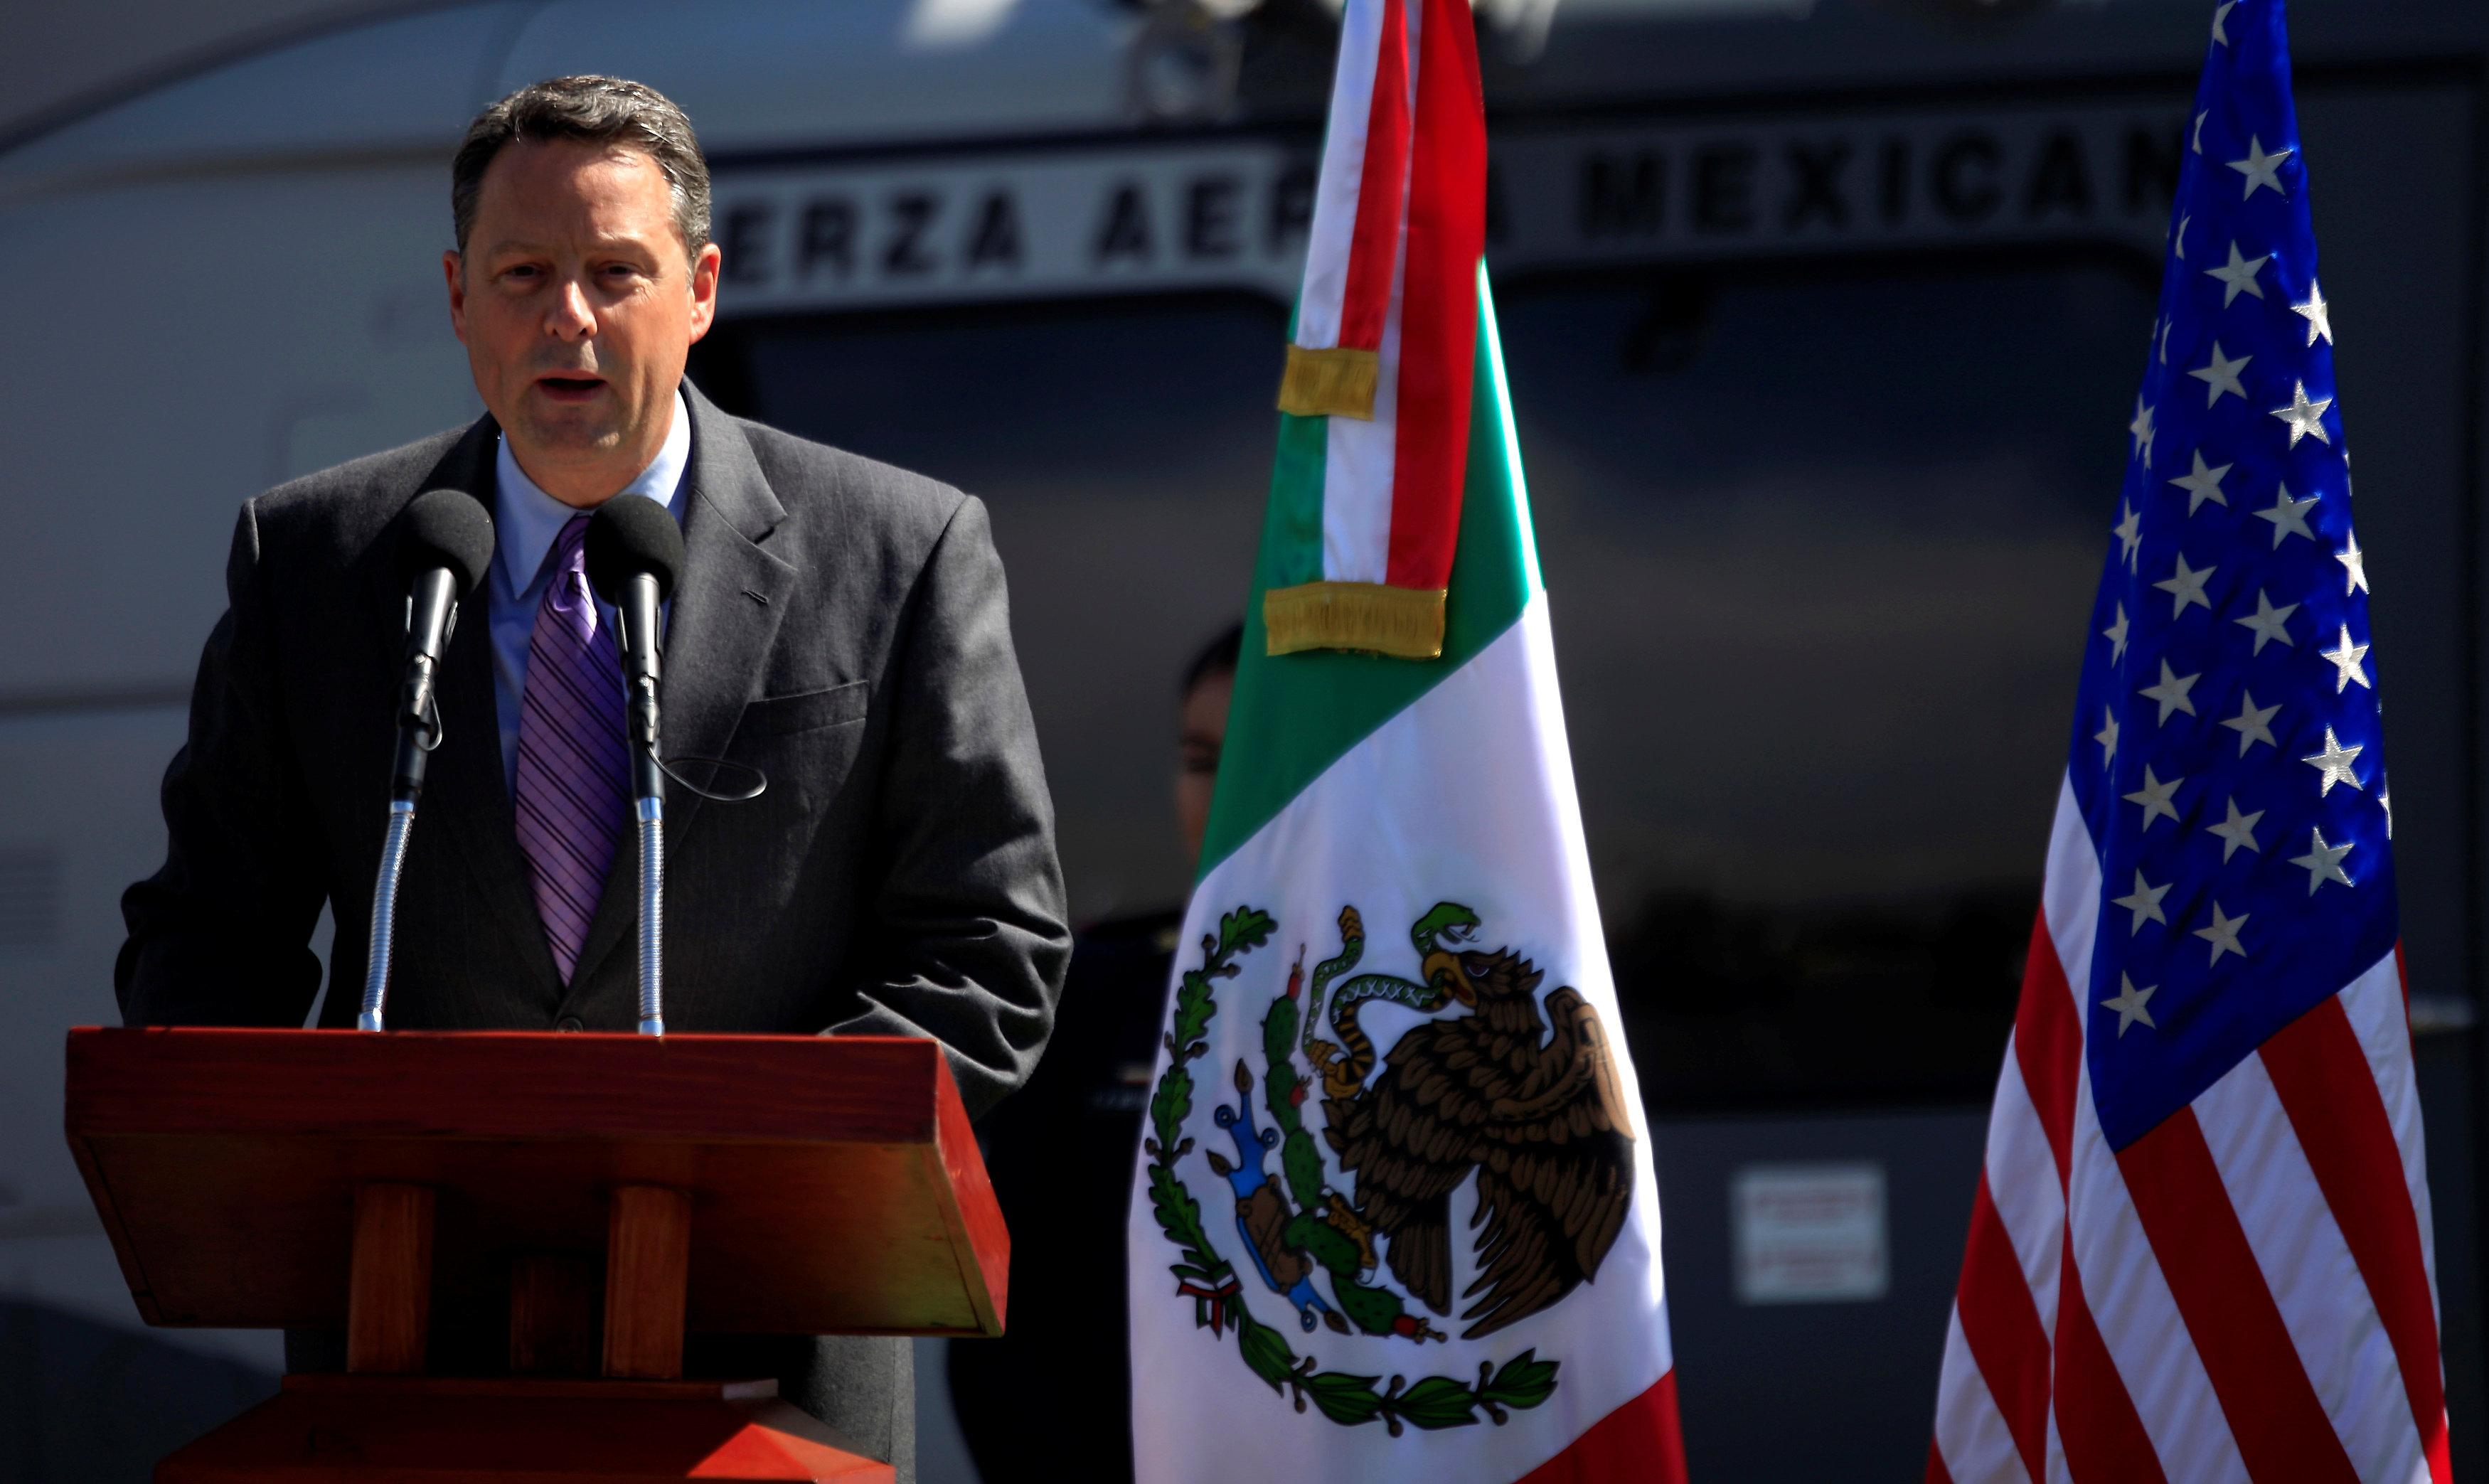 U.S. Deputy Chief of Mission John Feeley in Mexico speaks during a ceremony at a hangar of the Secretariat of National Defense in Mexico City, Mexico November 8, 2010.  Eliana Aponte